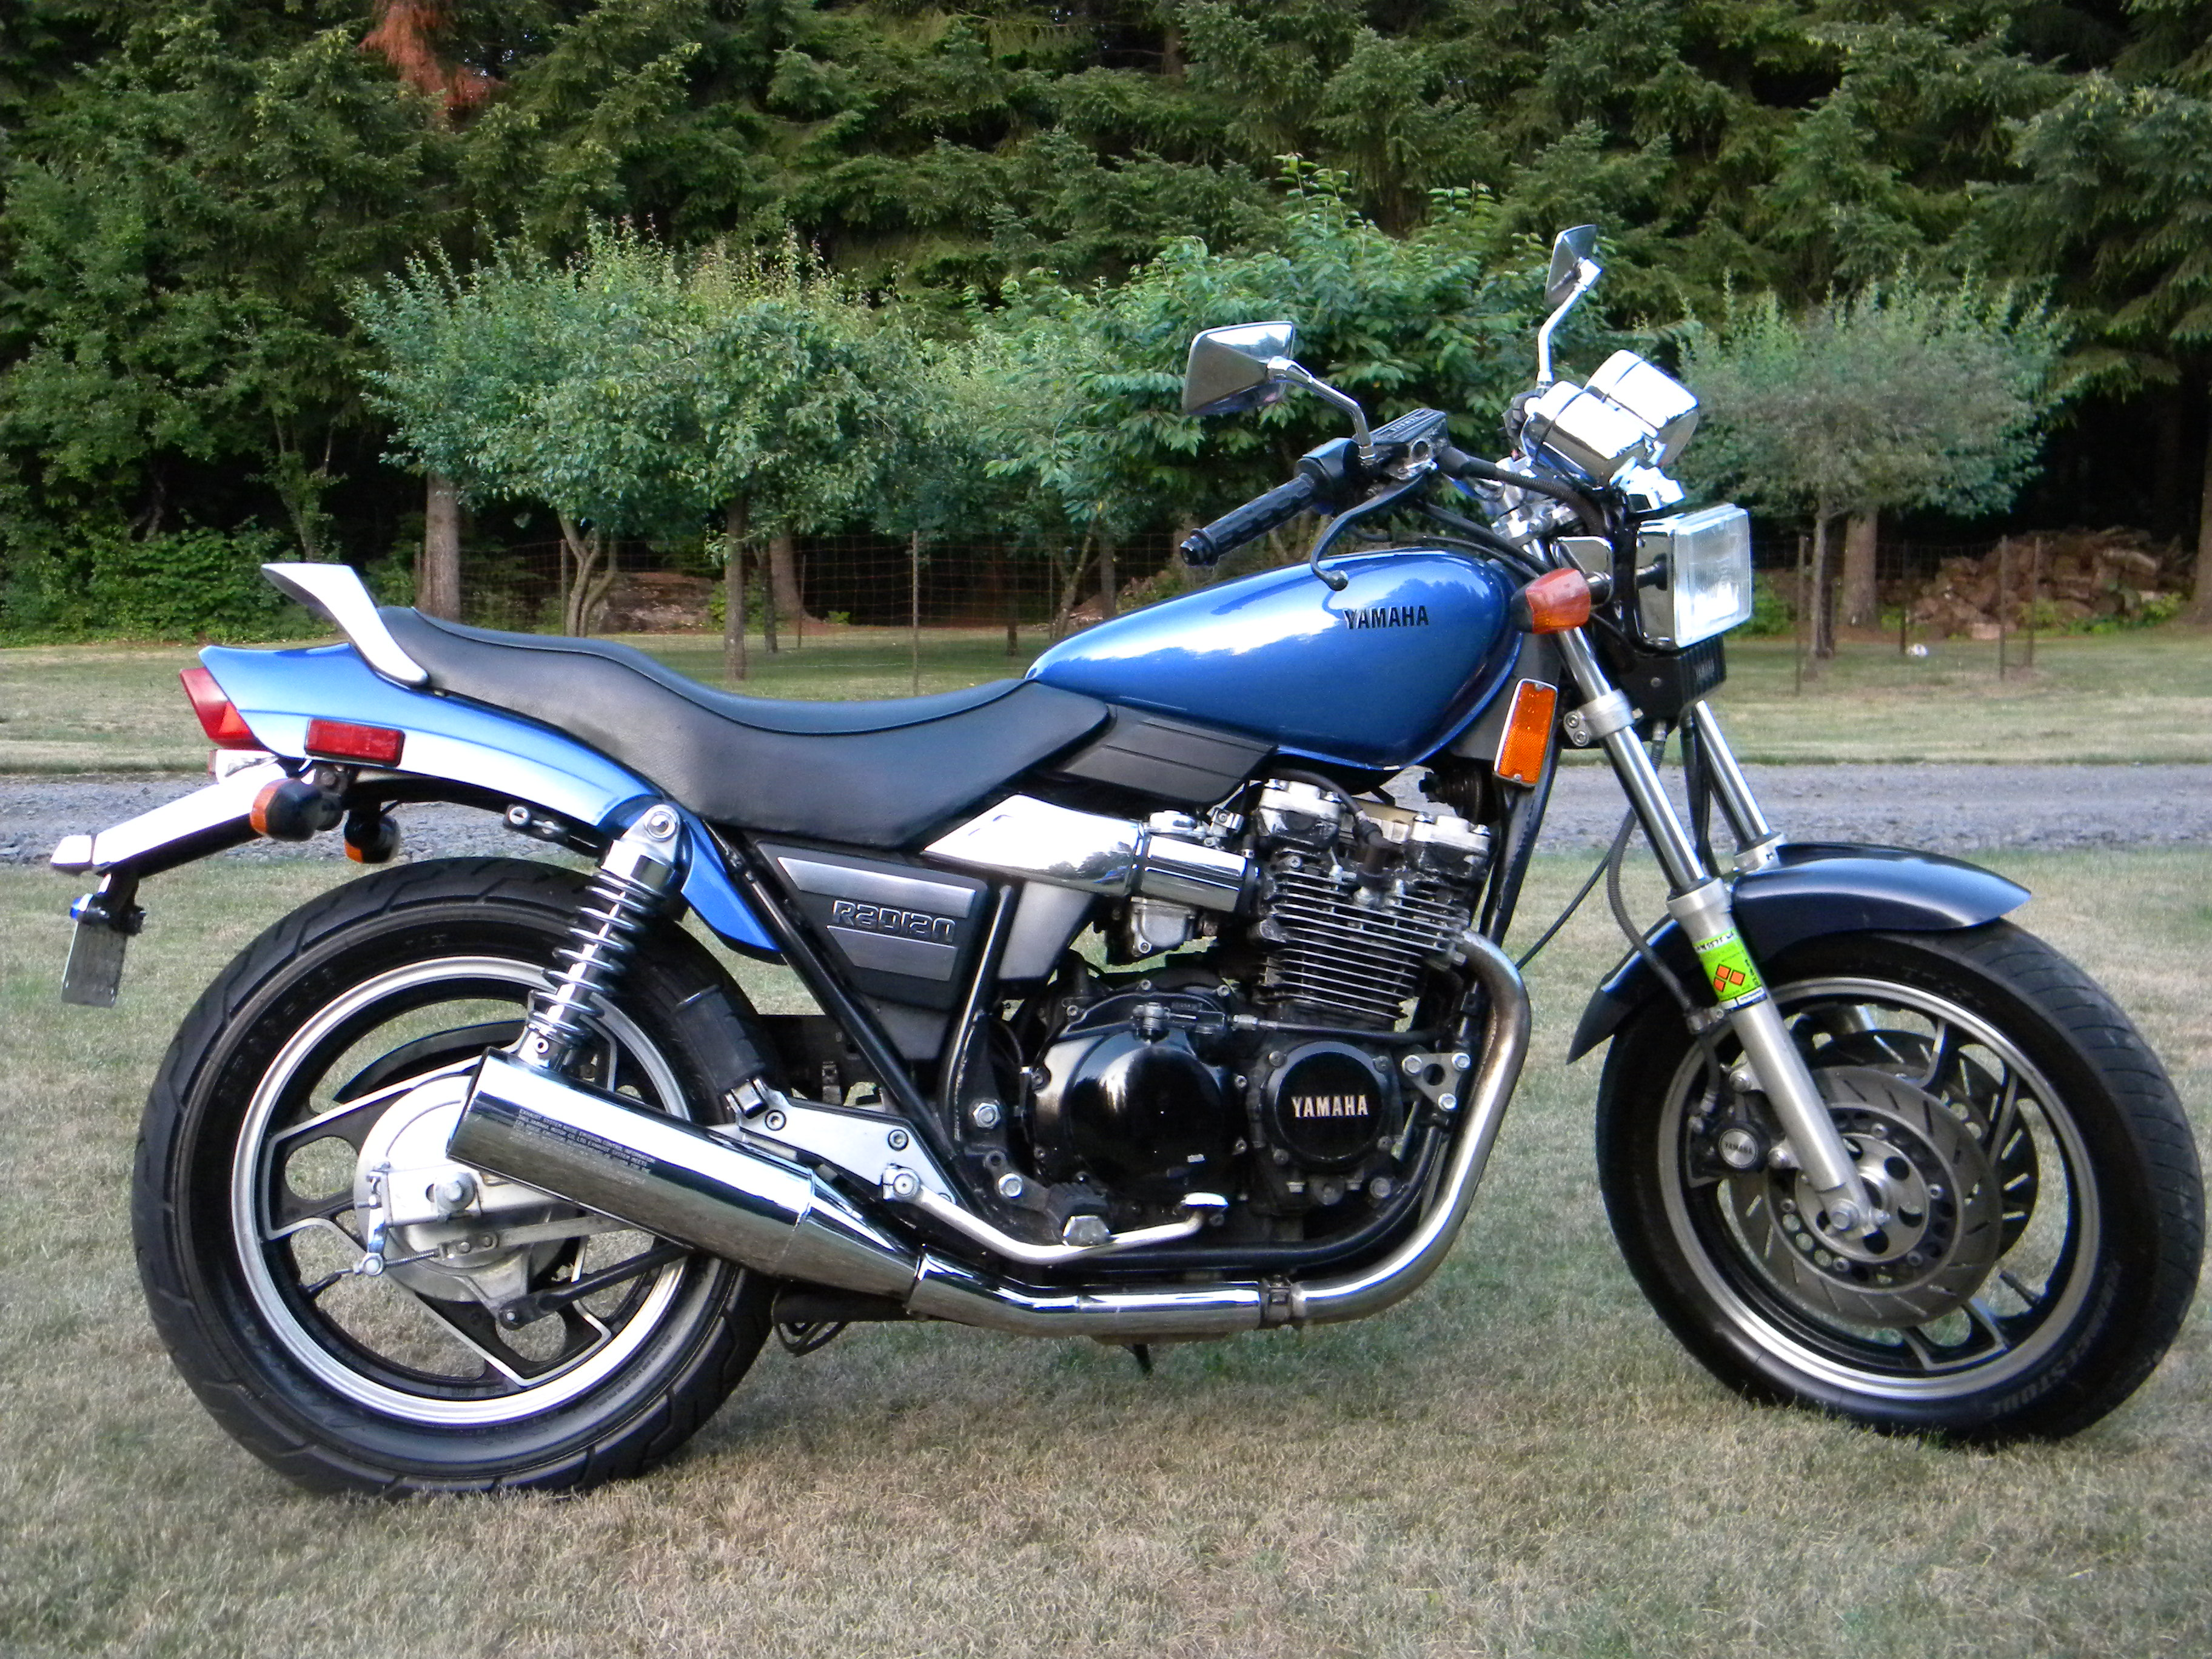 Yamaha RD 350 (reduced effect) 1985 #8